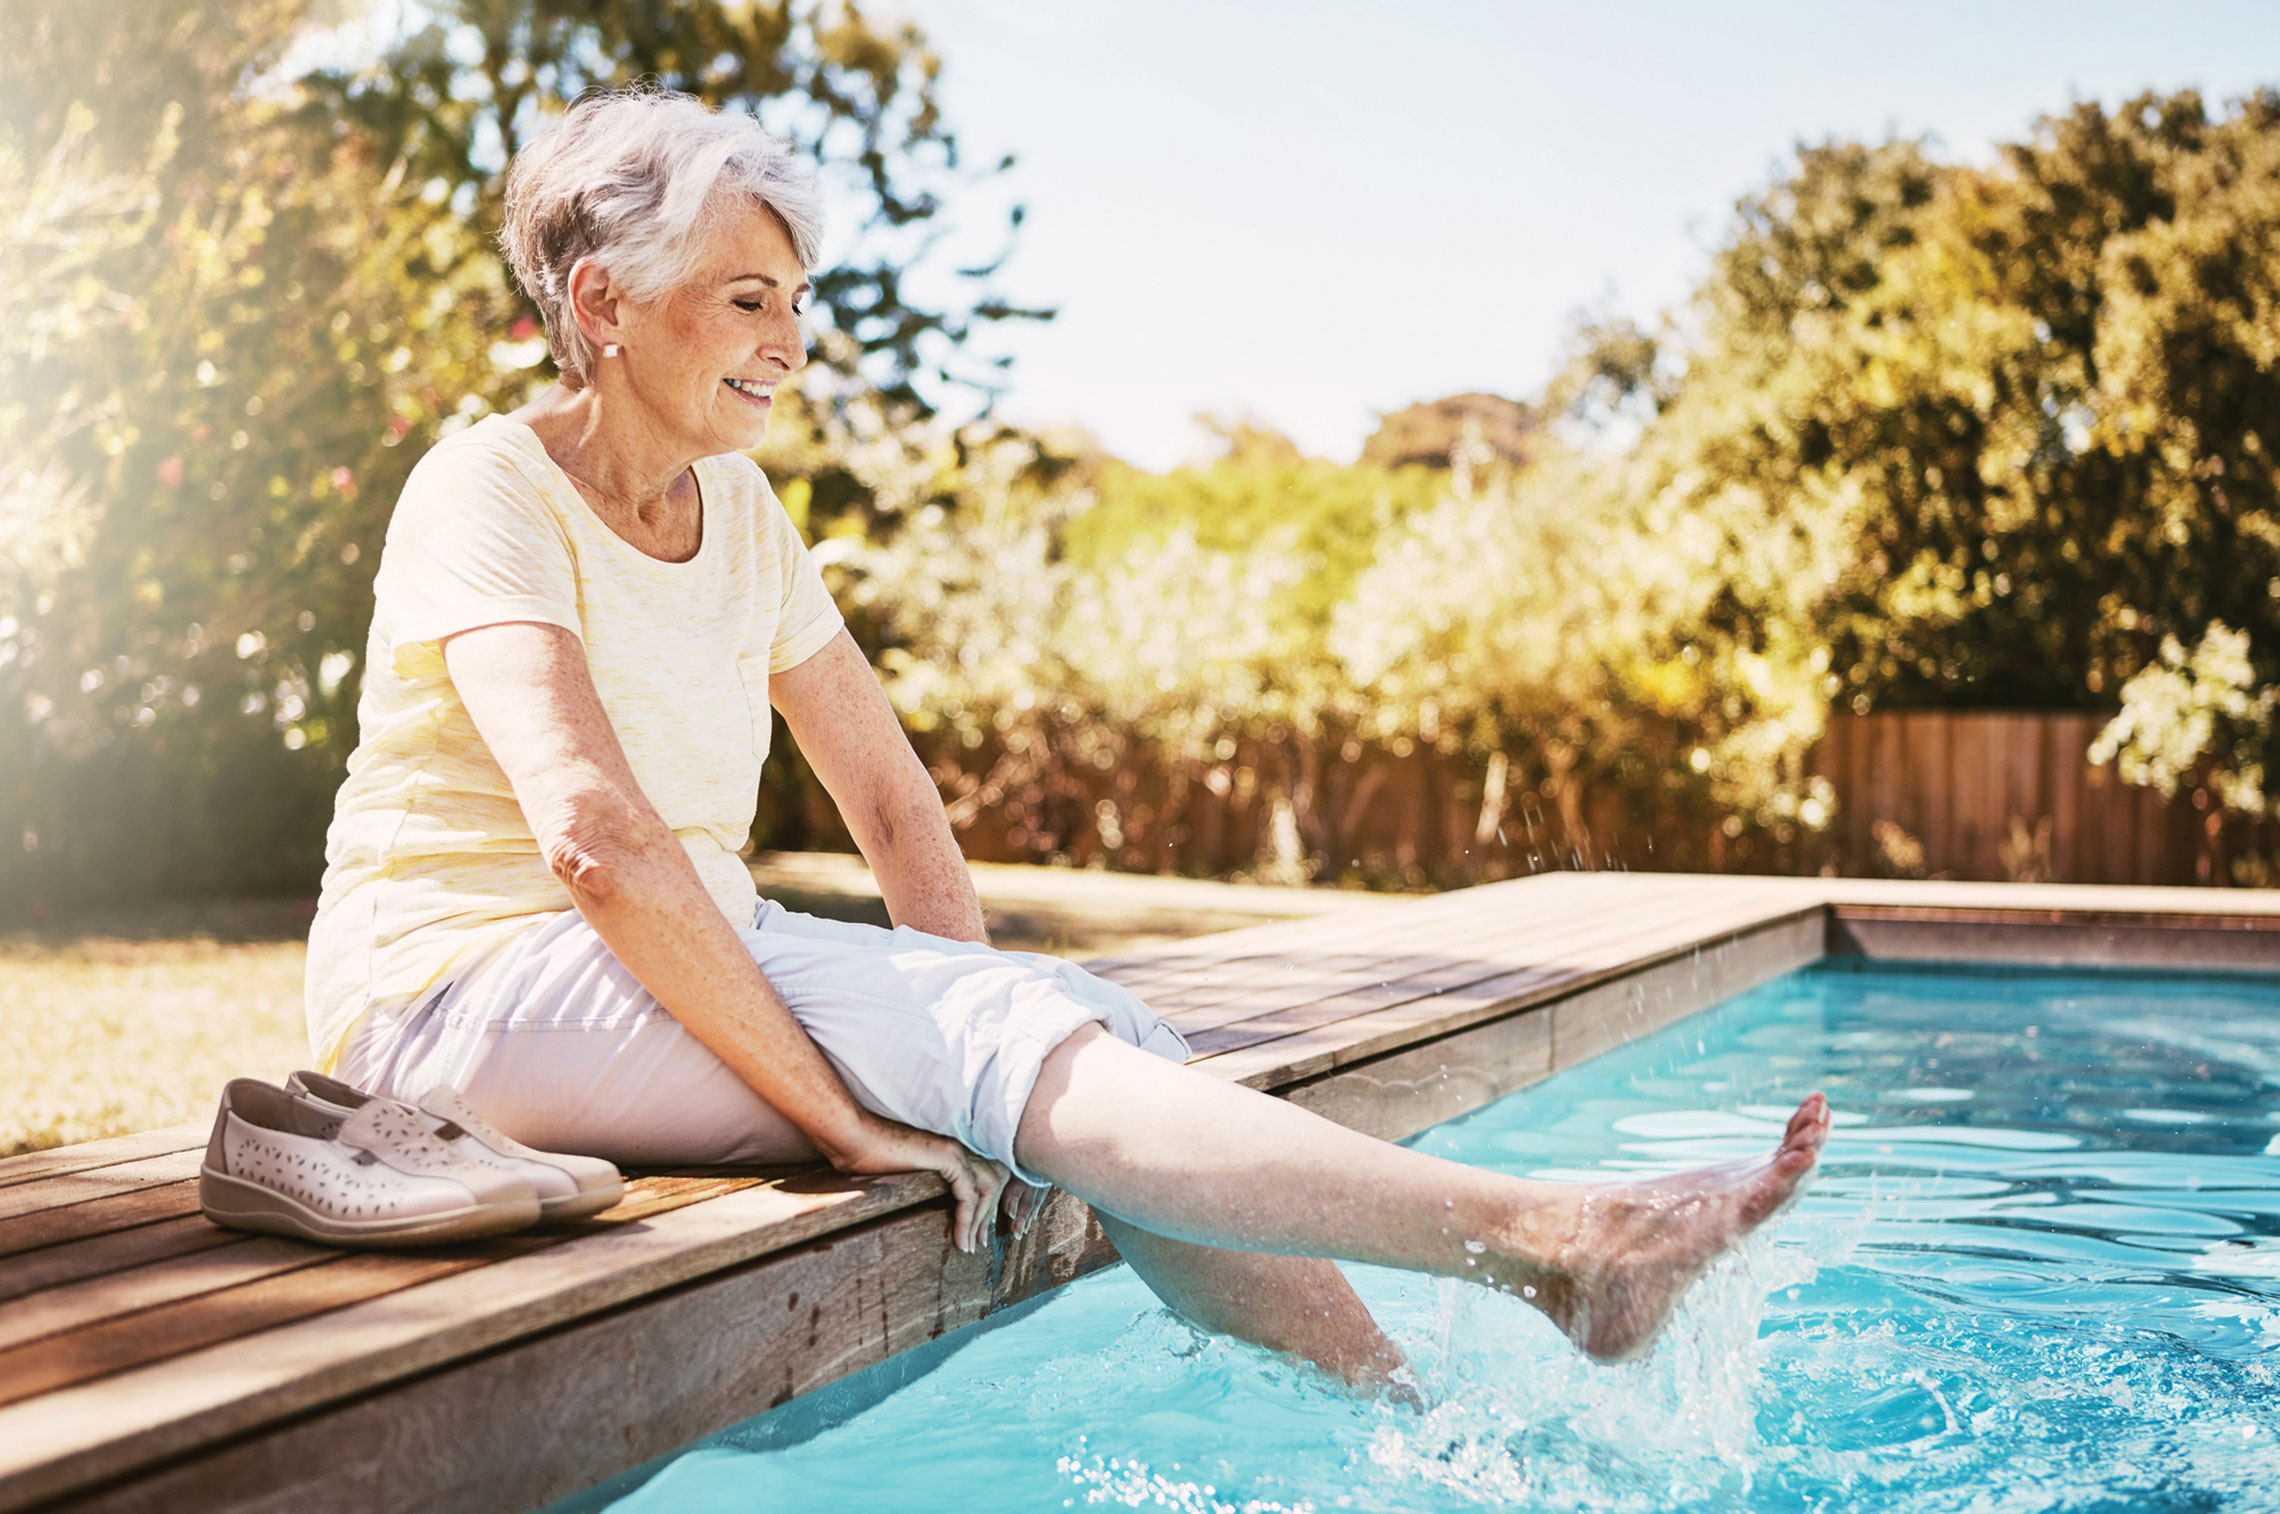 5 Cool Tips to Beat the End of Summer Heat